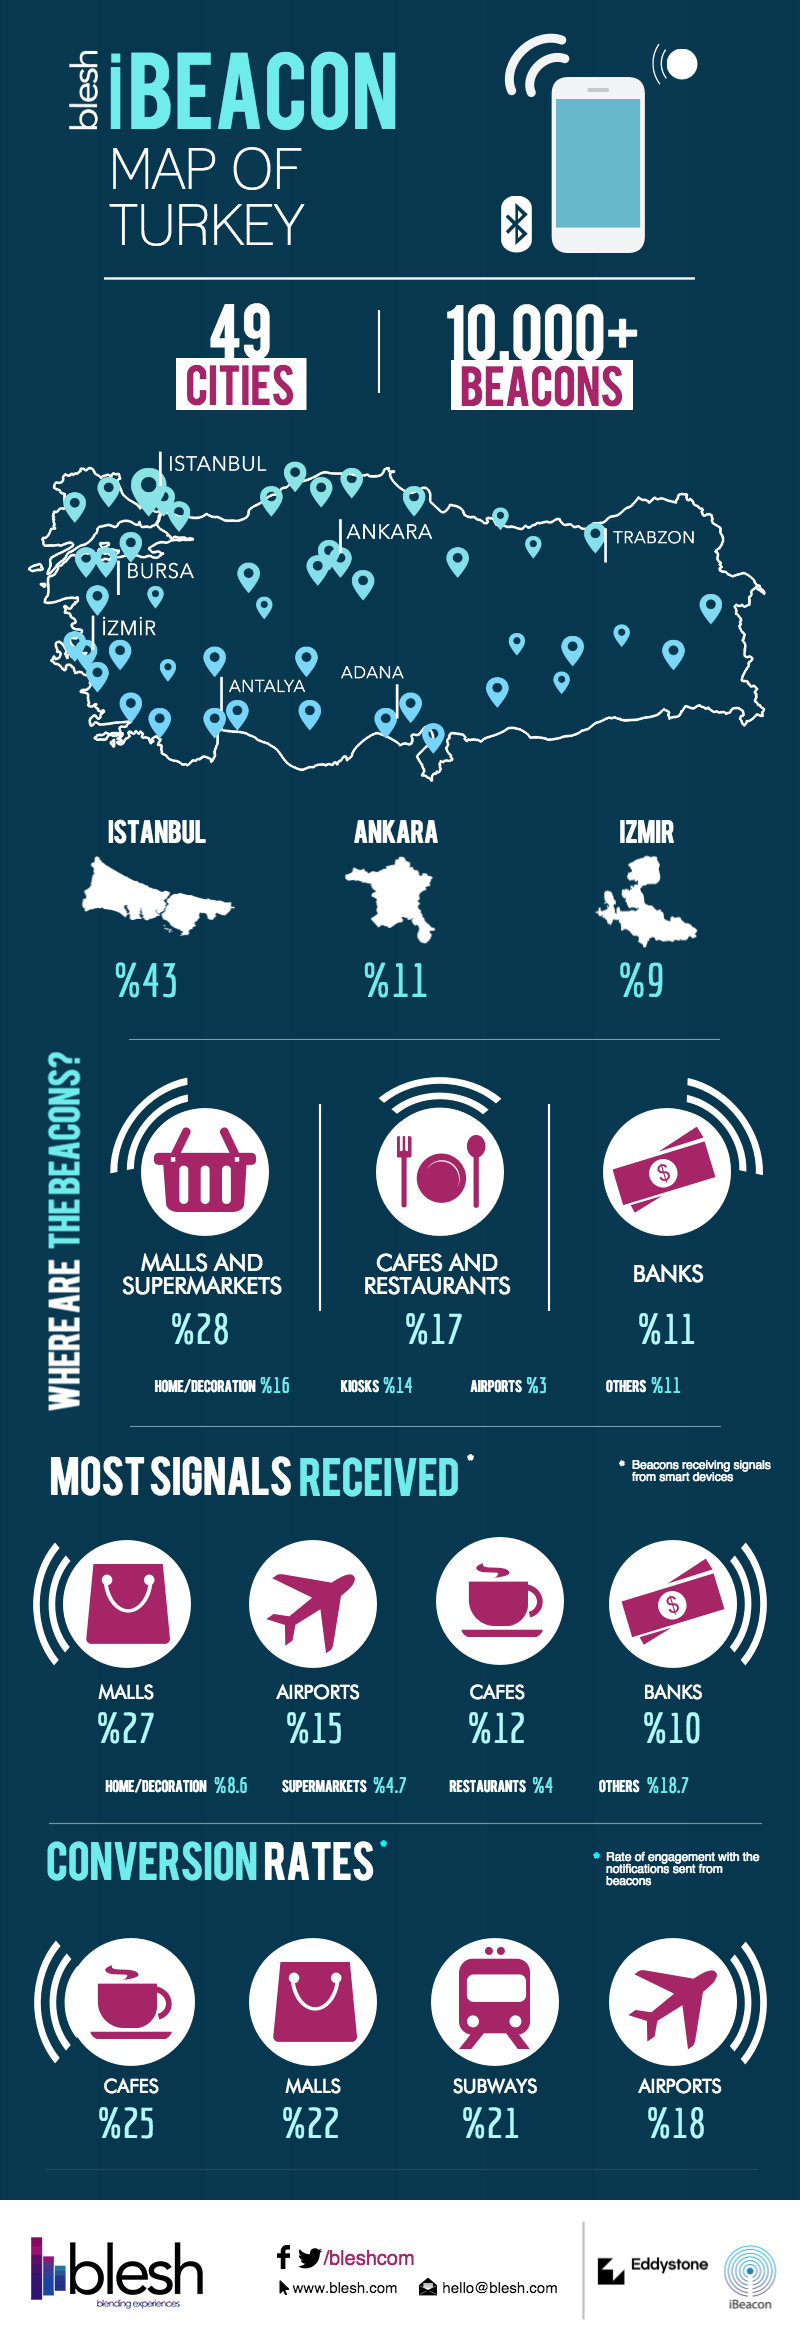 iBeacon-Map-of-Turkey-Infographic